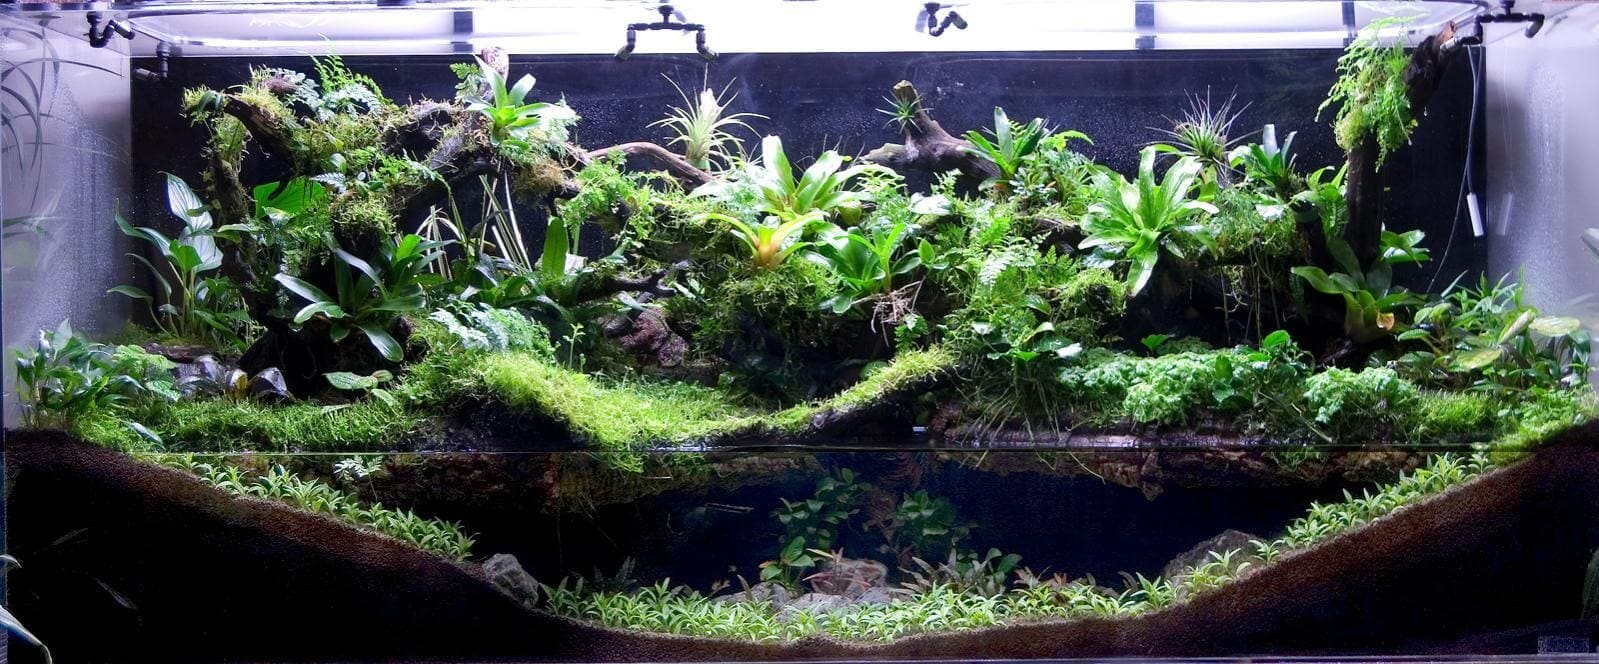 Building The Perfect Paludarium Tank Animals Plants Waterfalls